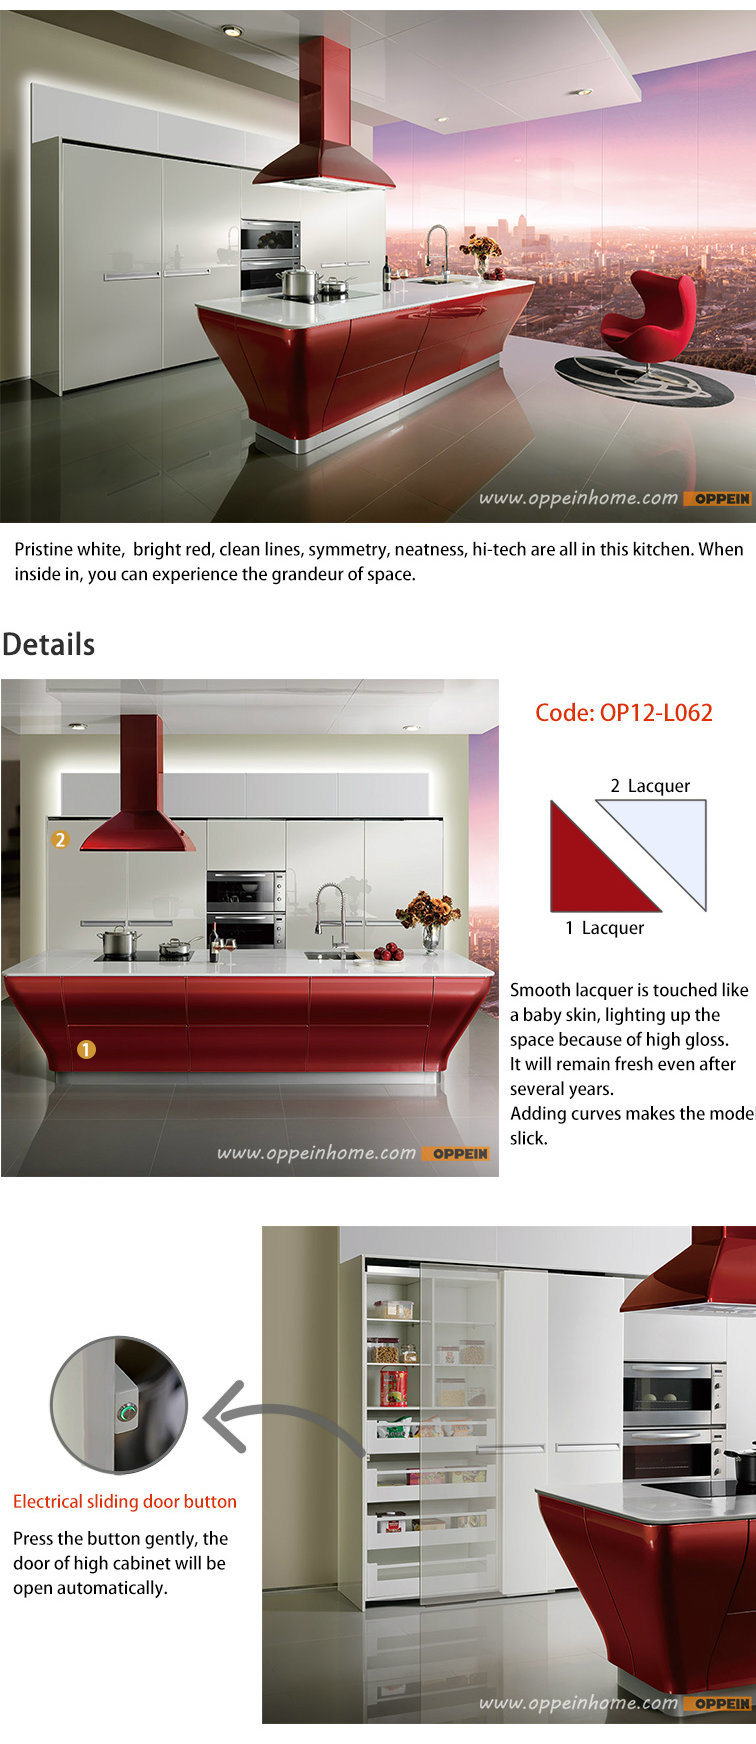 Smart expo guangzhou manufacturer oppein smart red for China kitchen cabinets manufacturers